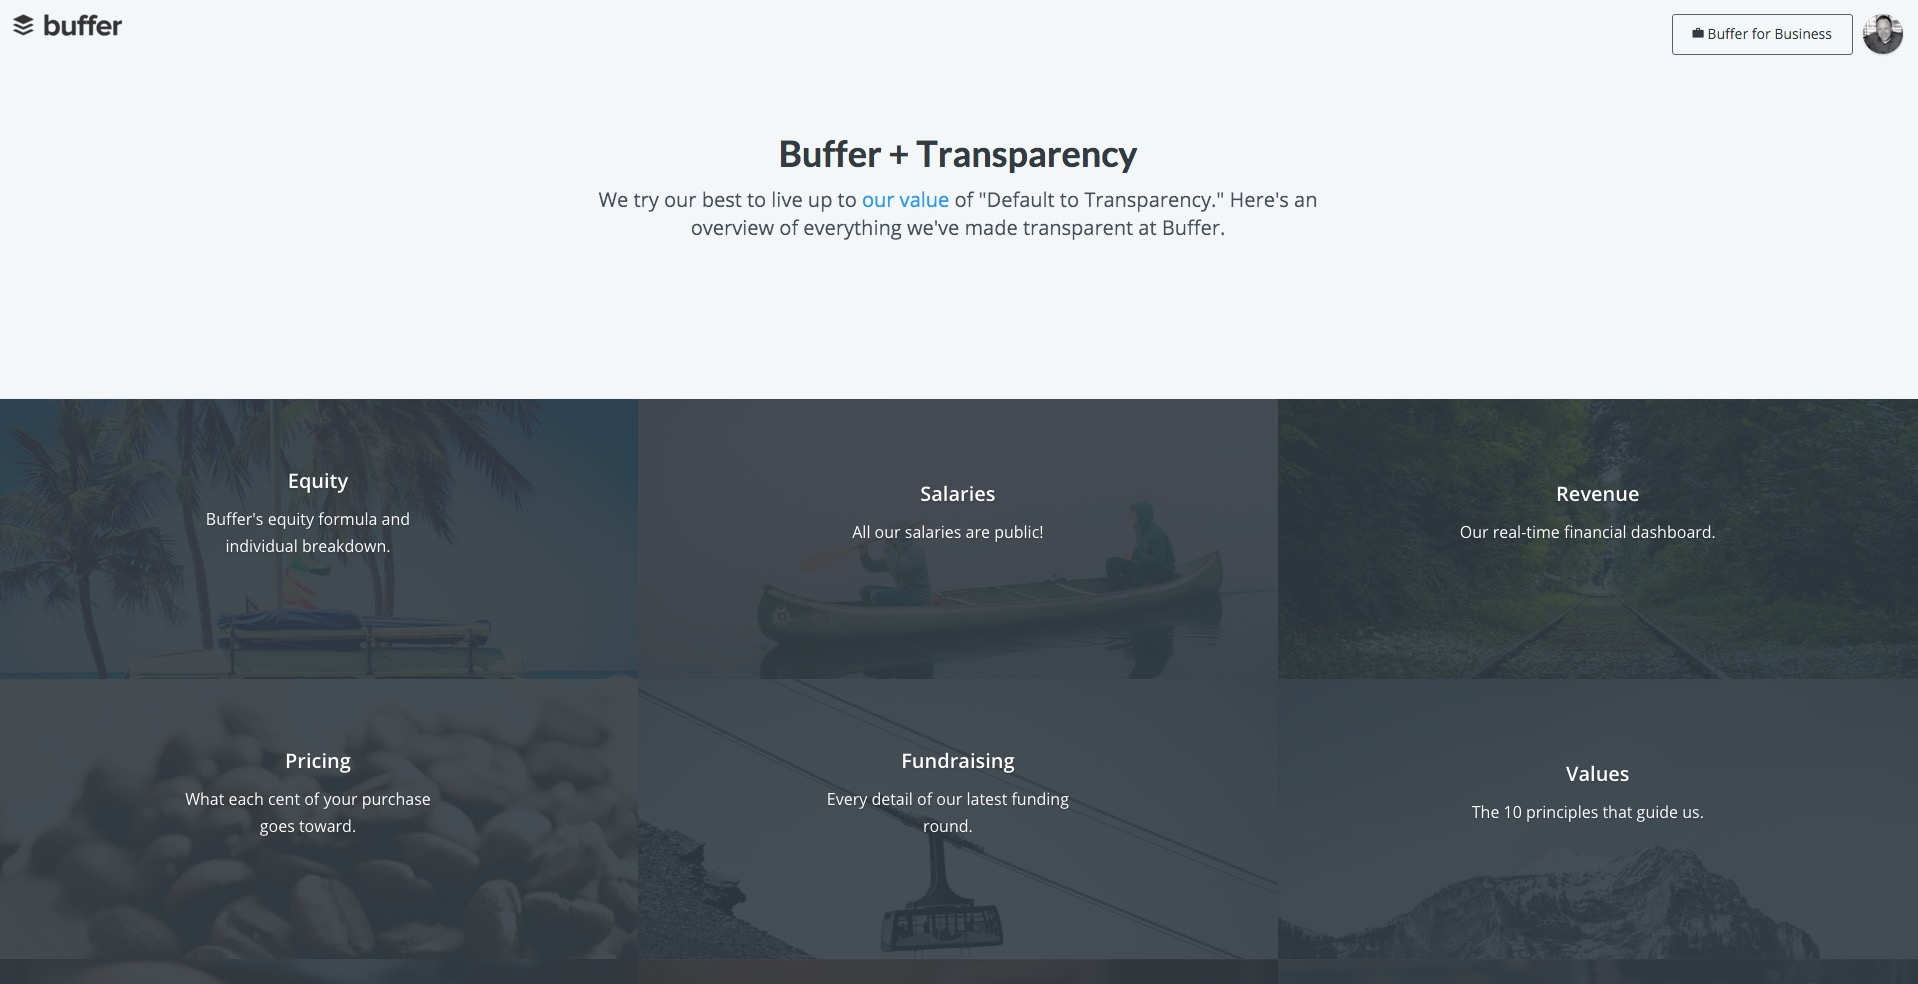 Buffer and Transparency